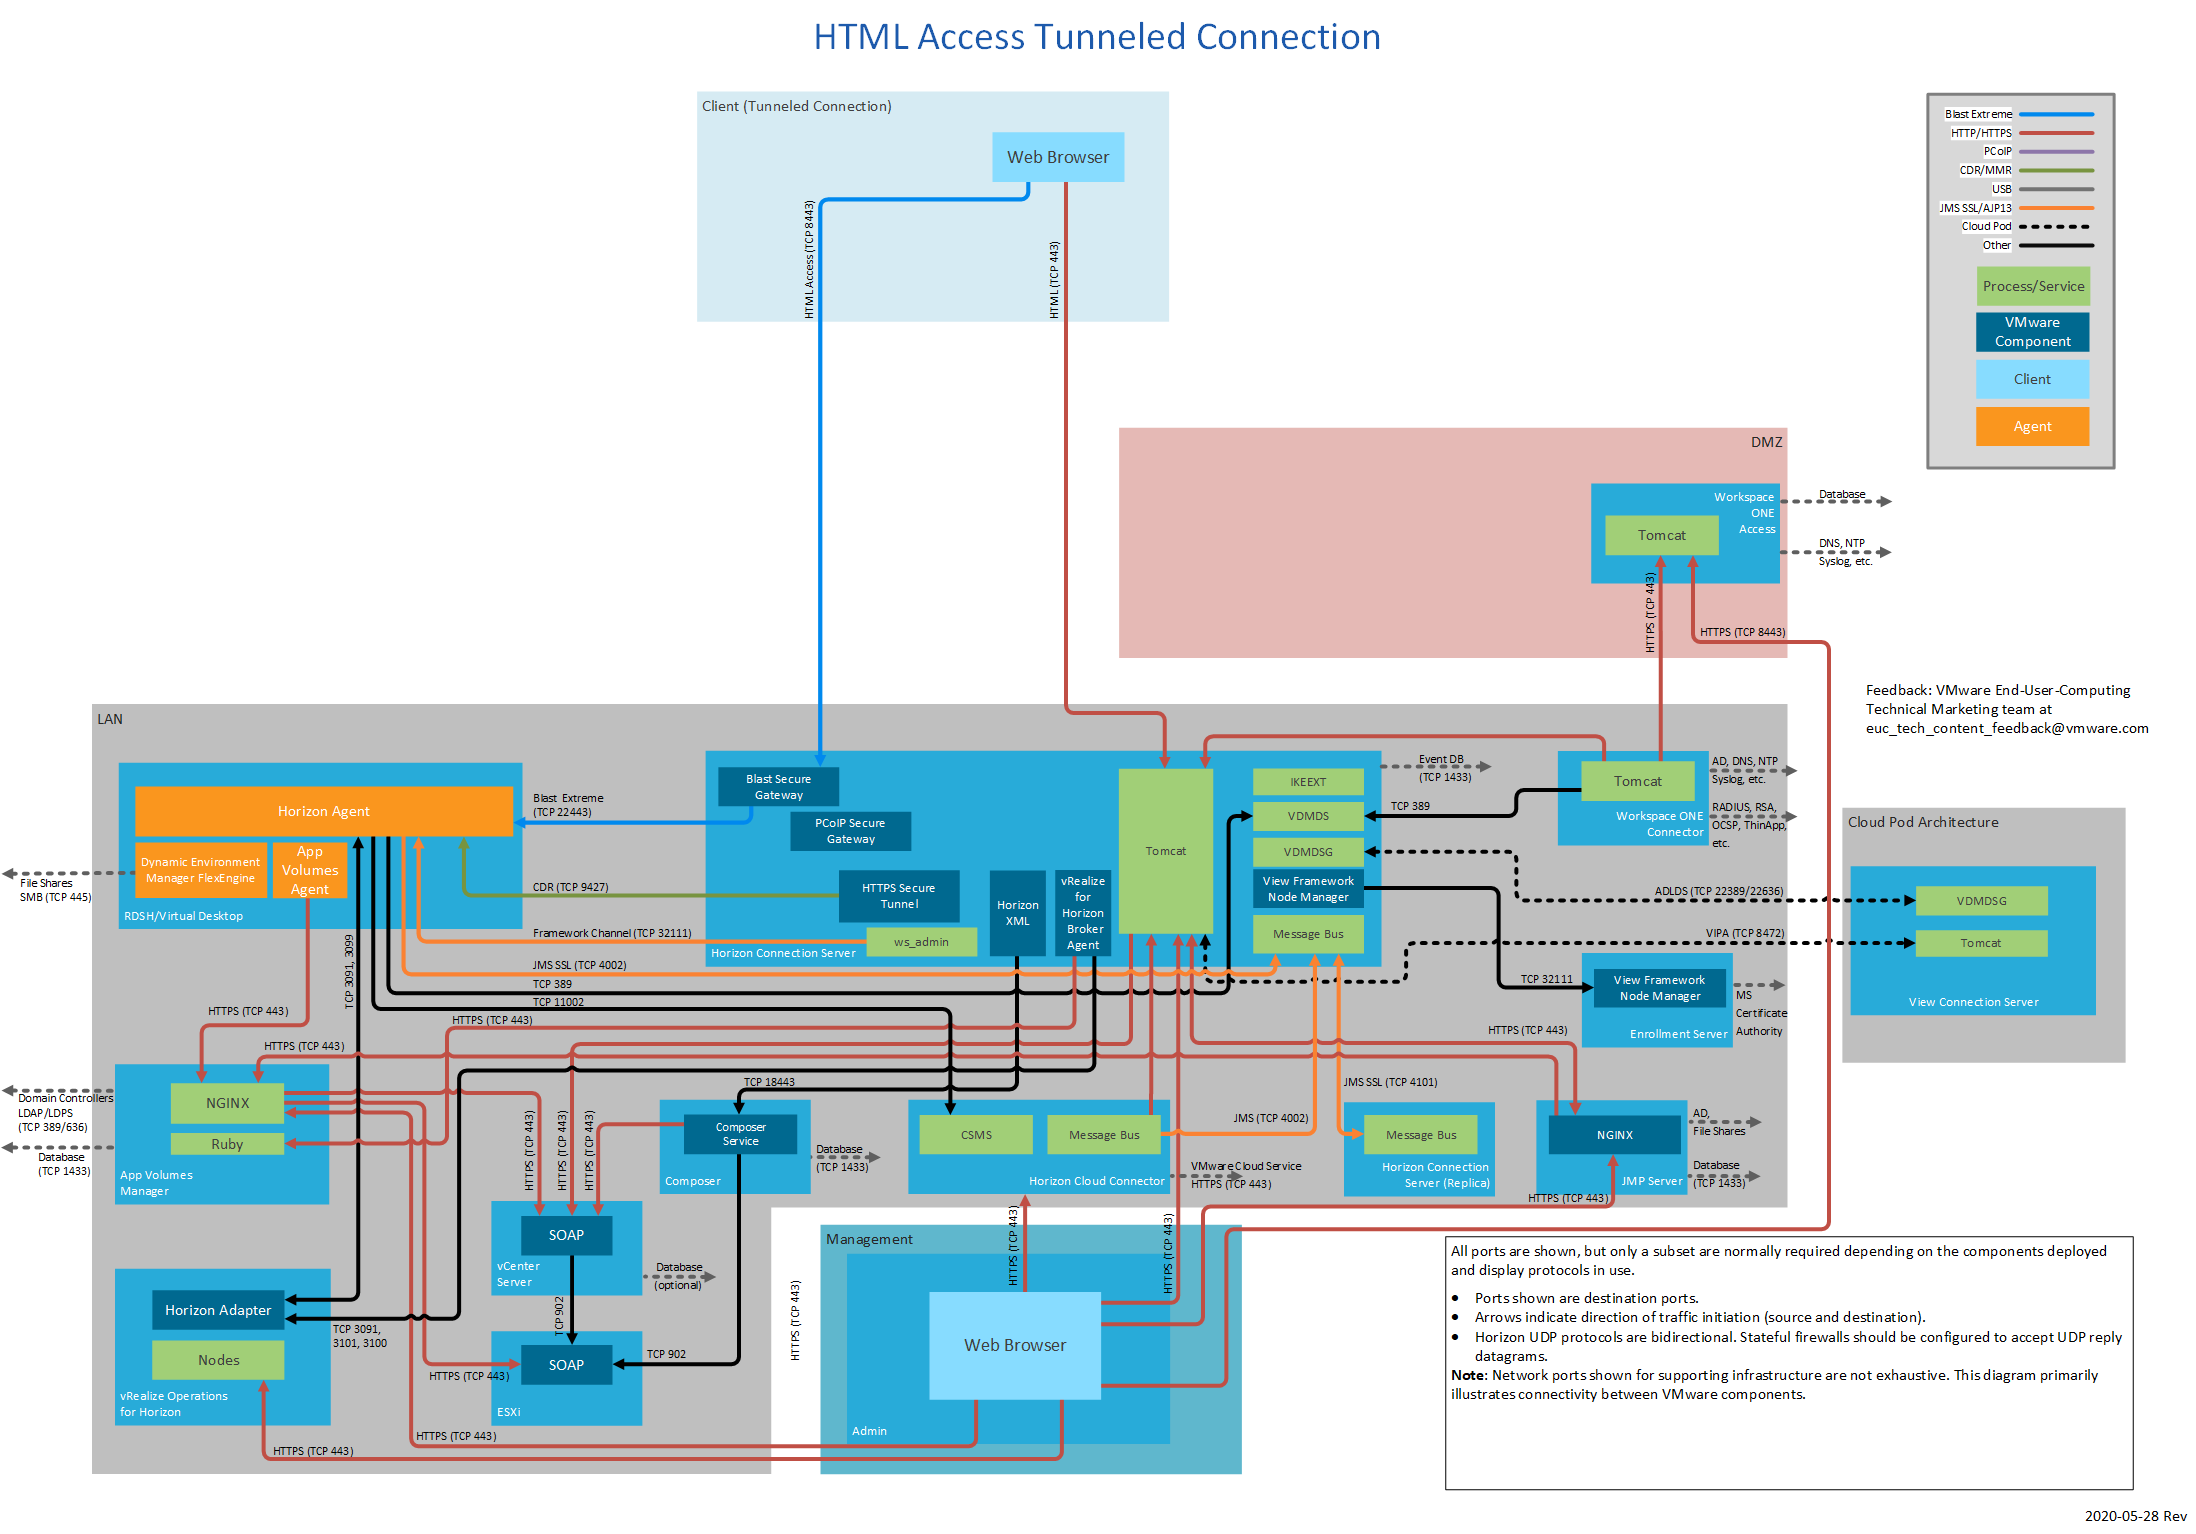 Network ports for HTML Access tunneled connection.